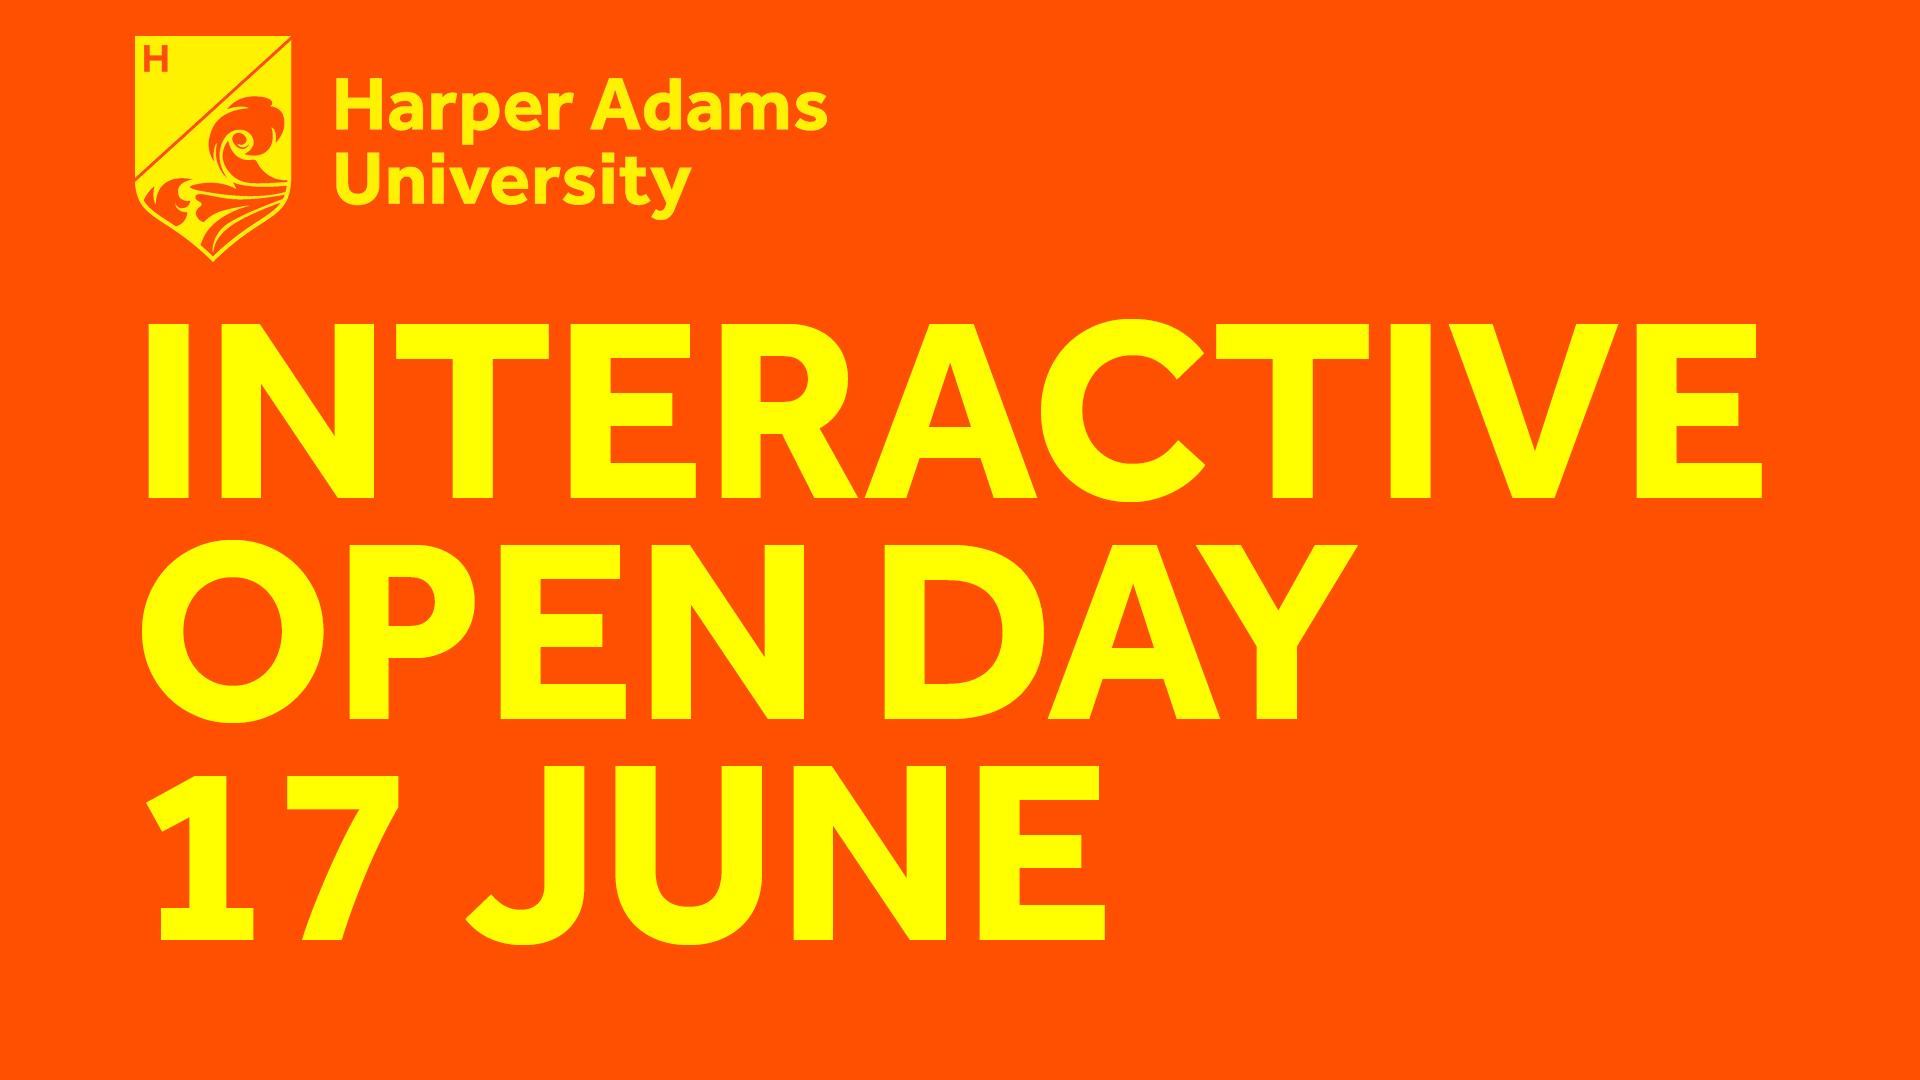 Virtual Open Day - 17 June 2020